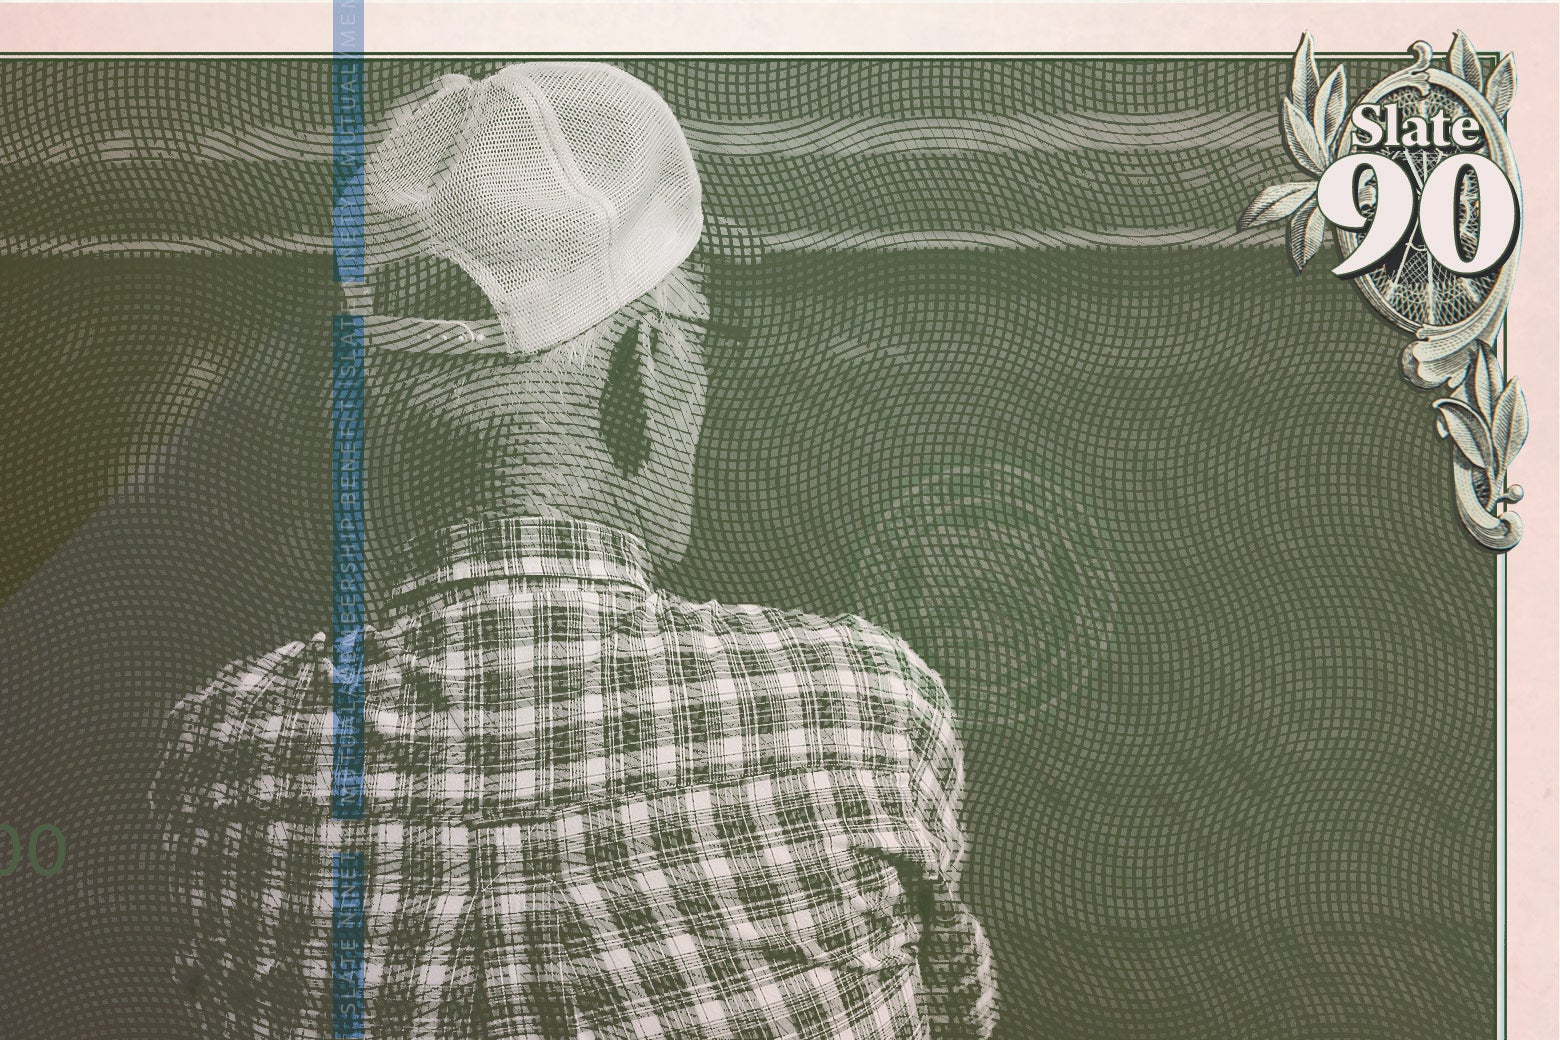 An older man in a plaid shirt and baseball cap, made to look like he's on a piece of paper money.